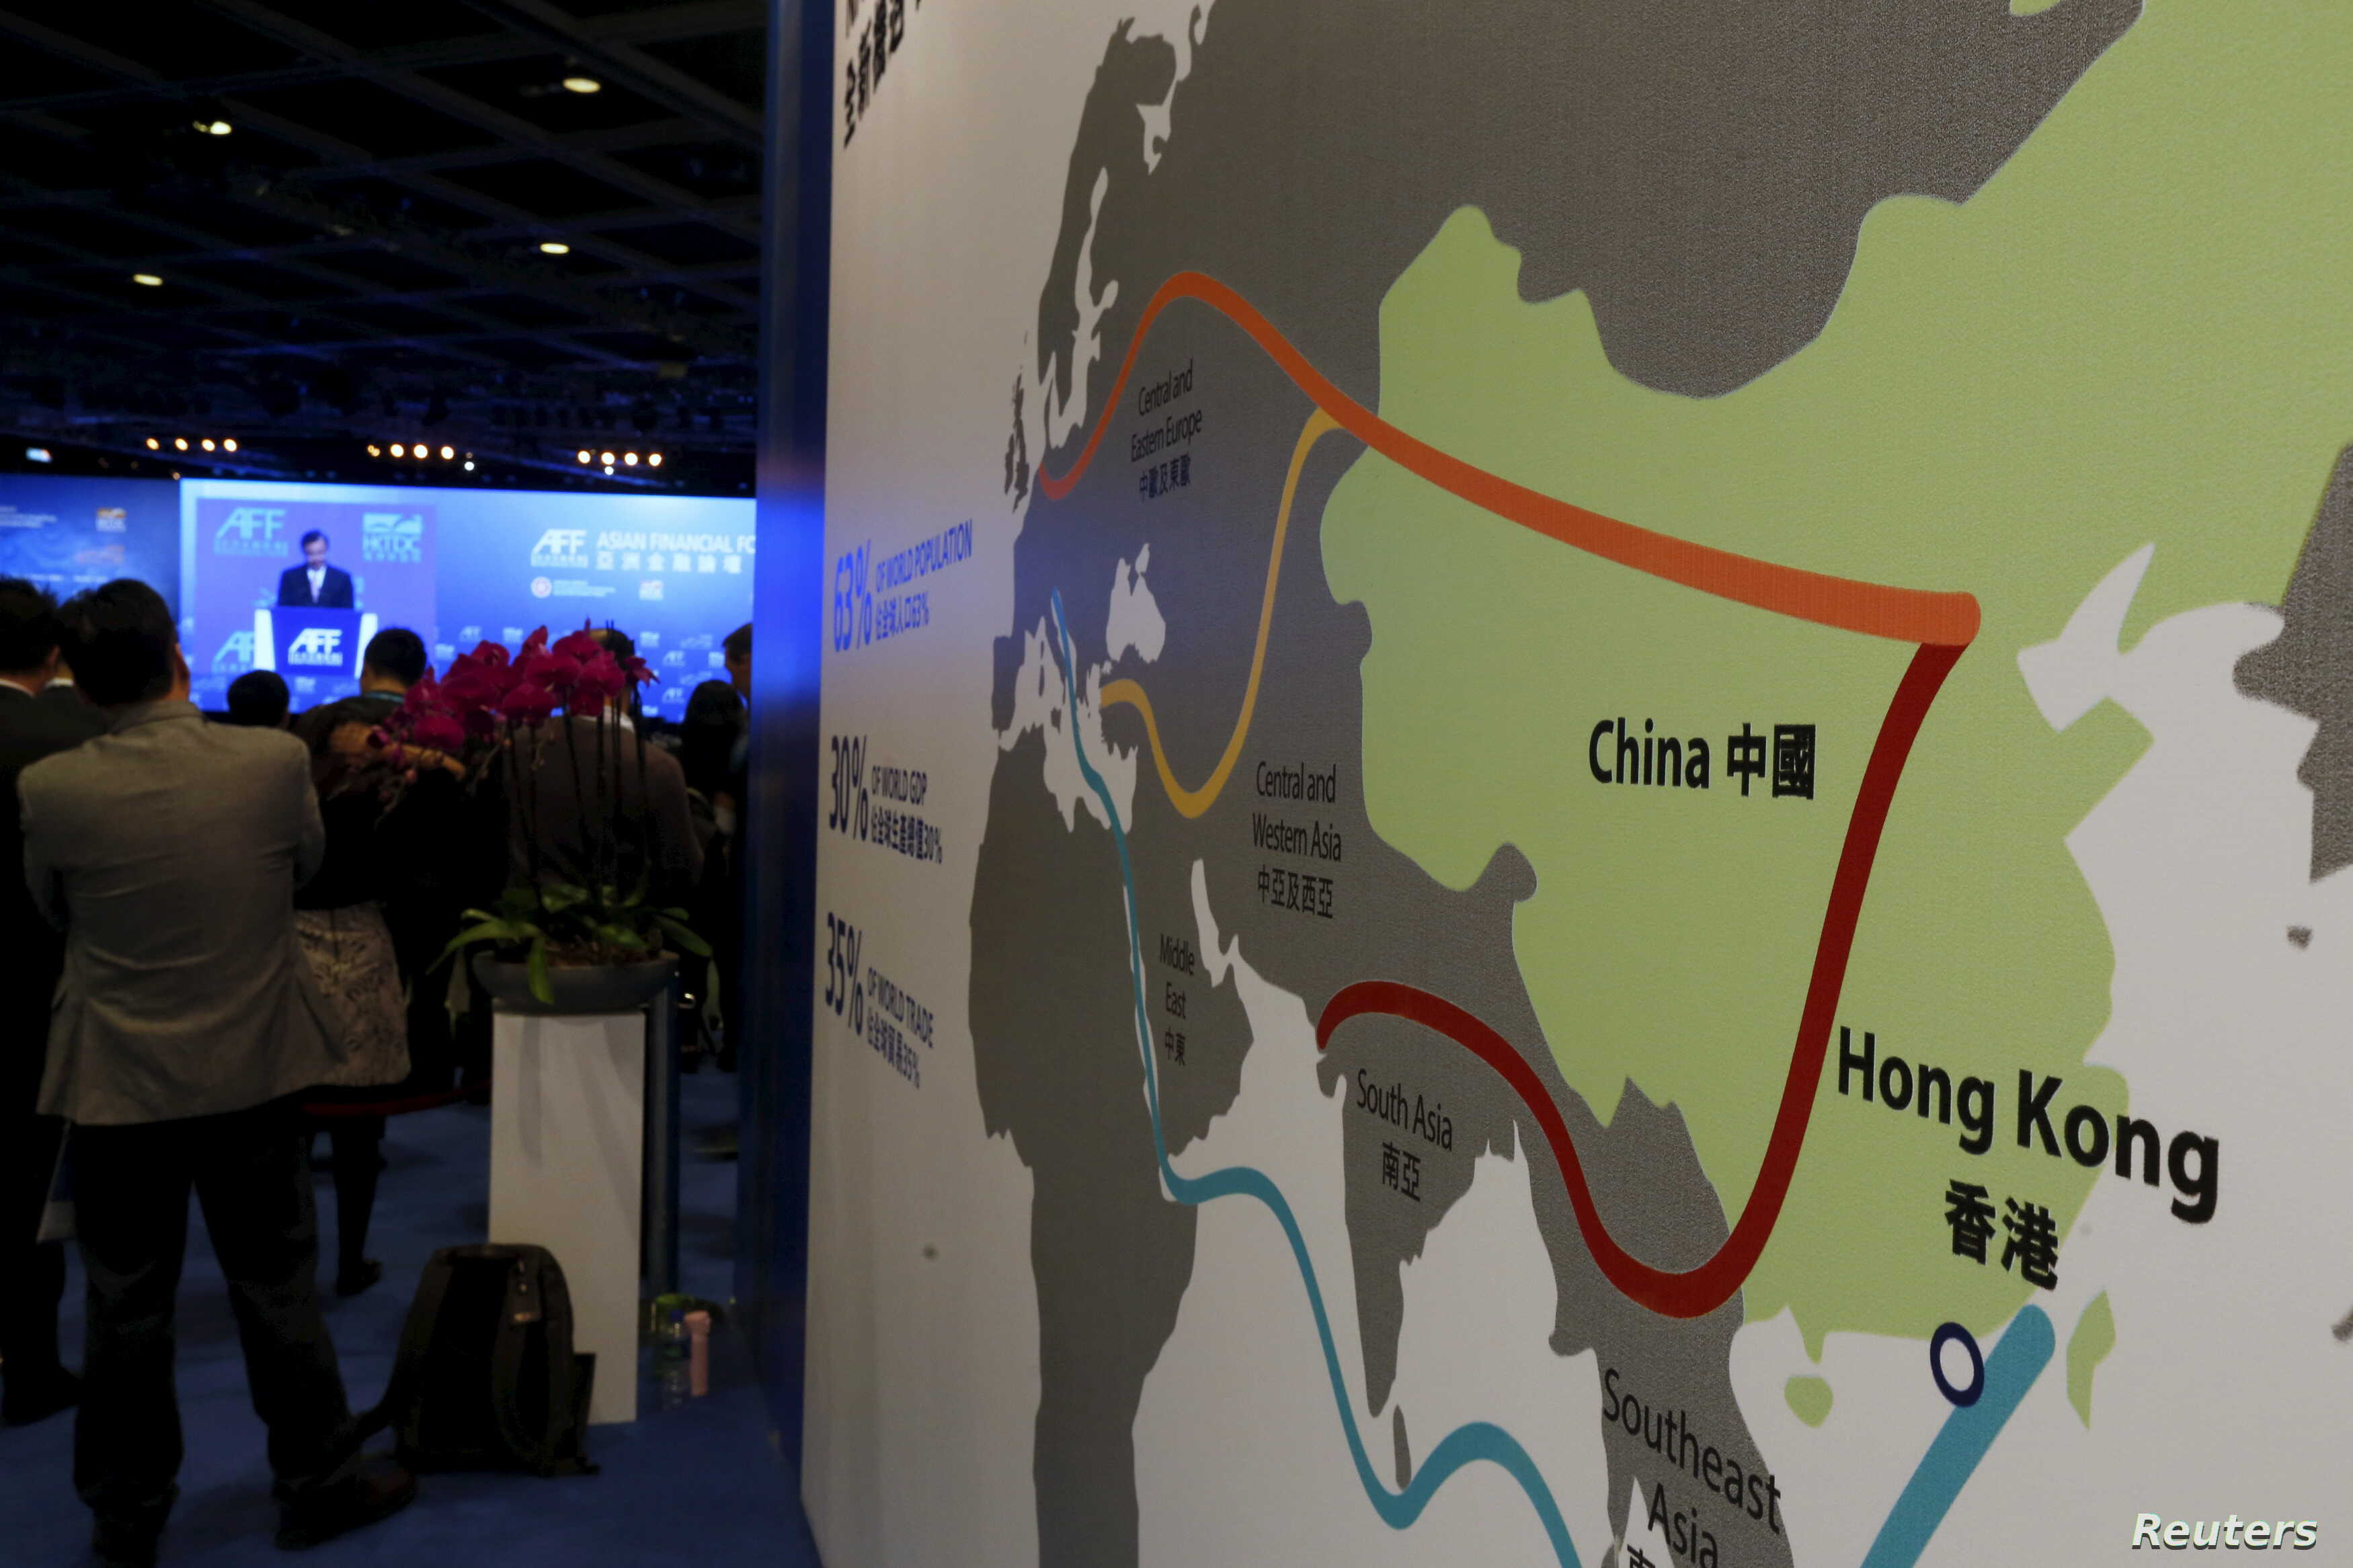 China: Silk Road Plan Not Tied to Xi Presidency | Voice of America - English